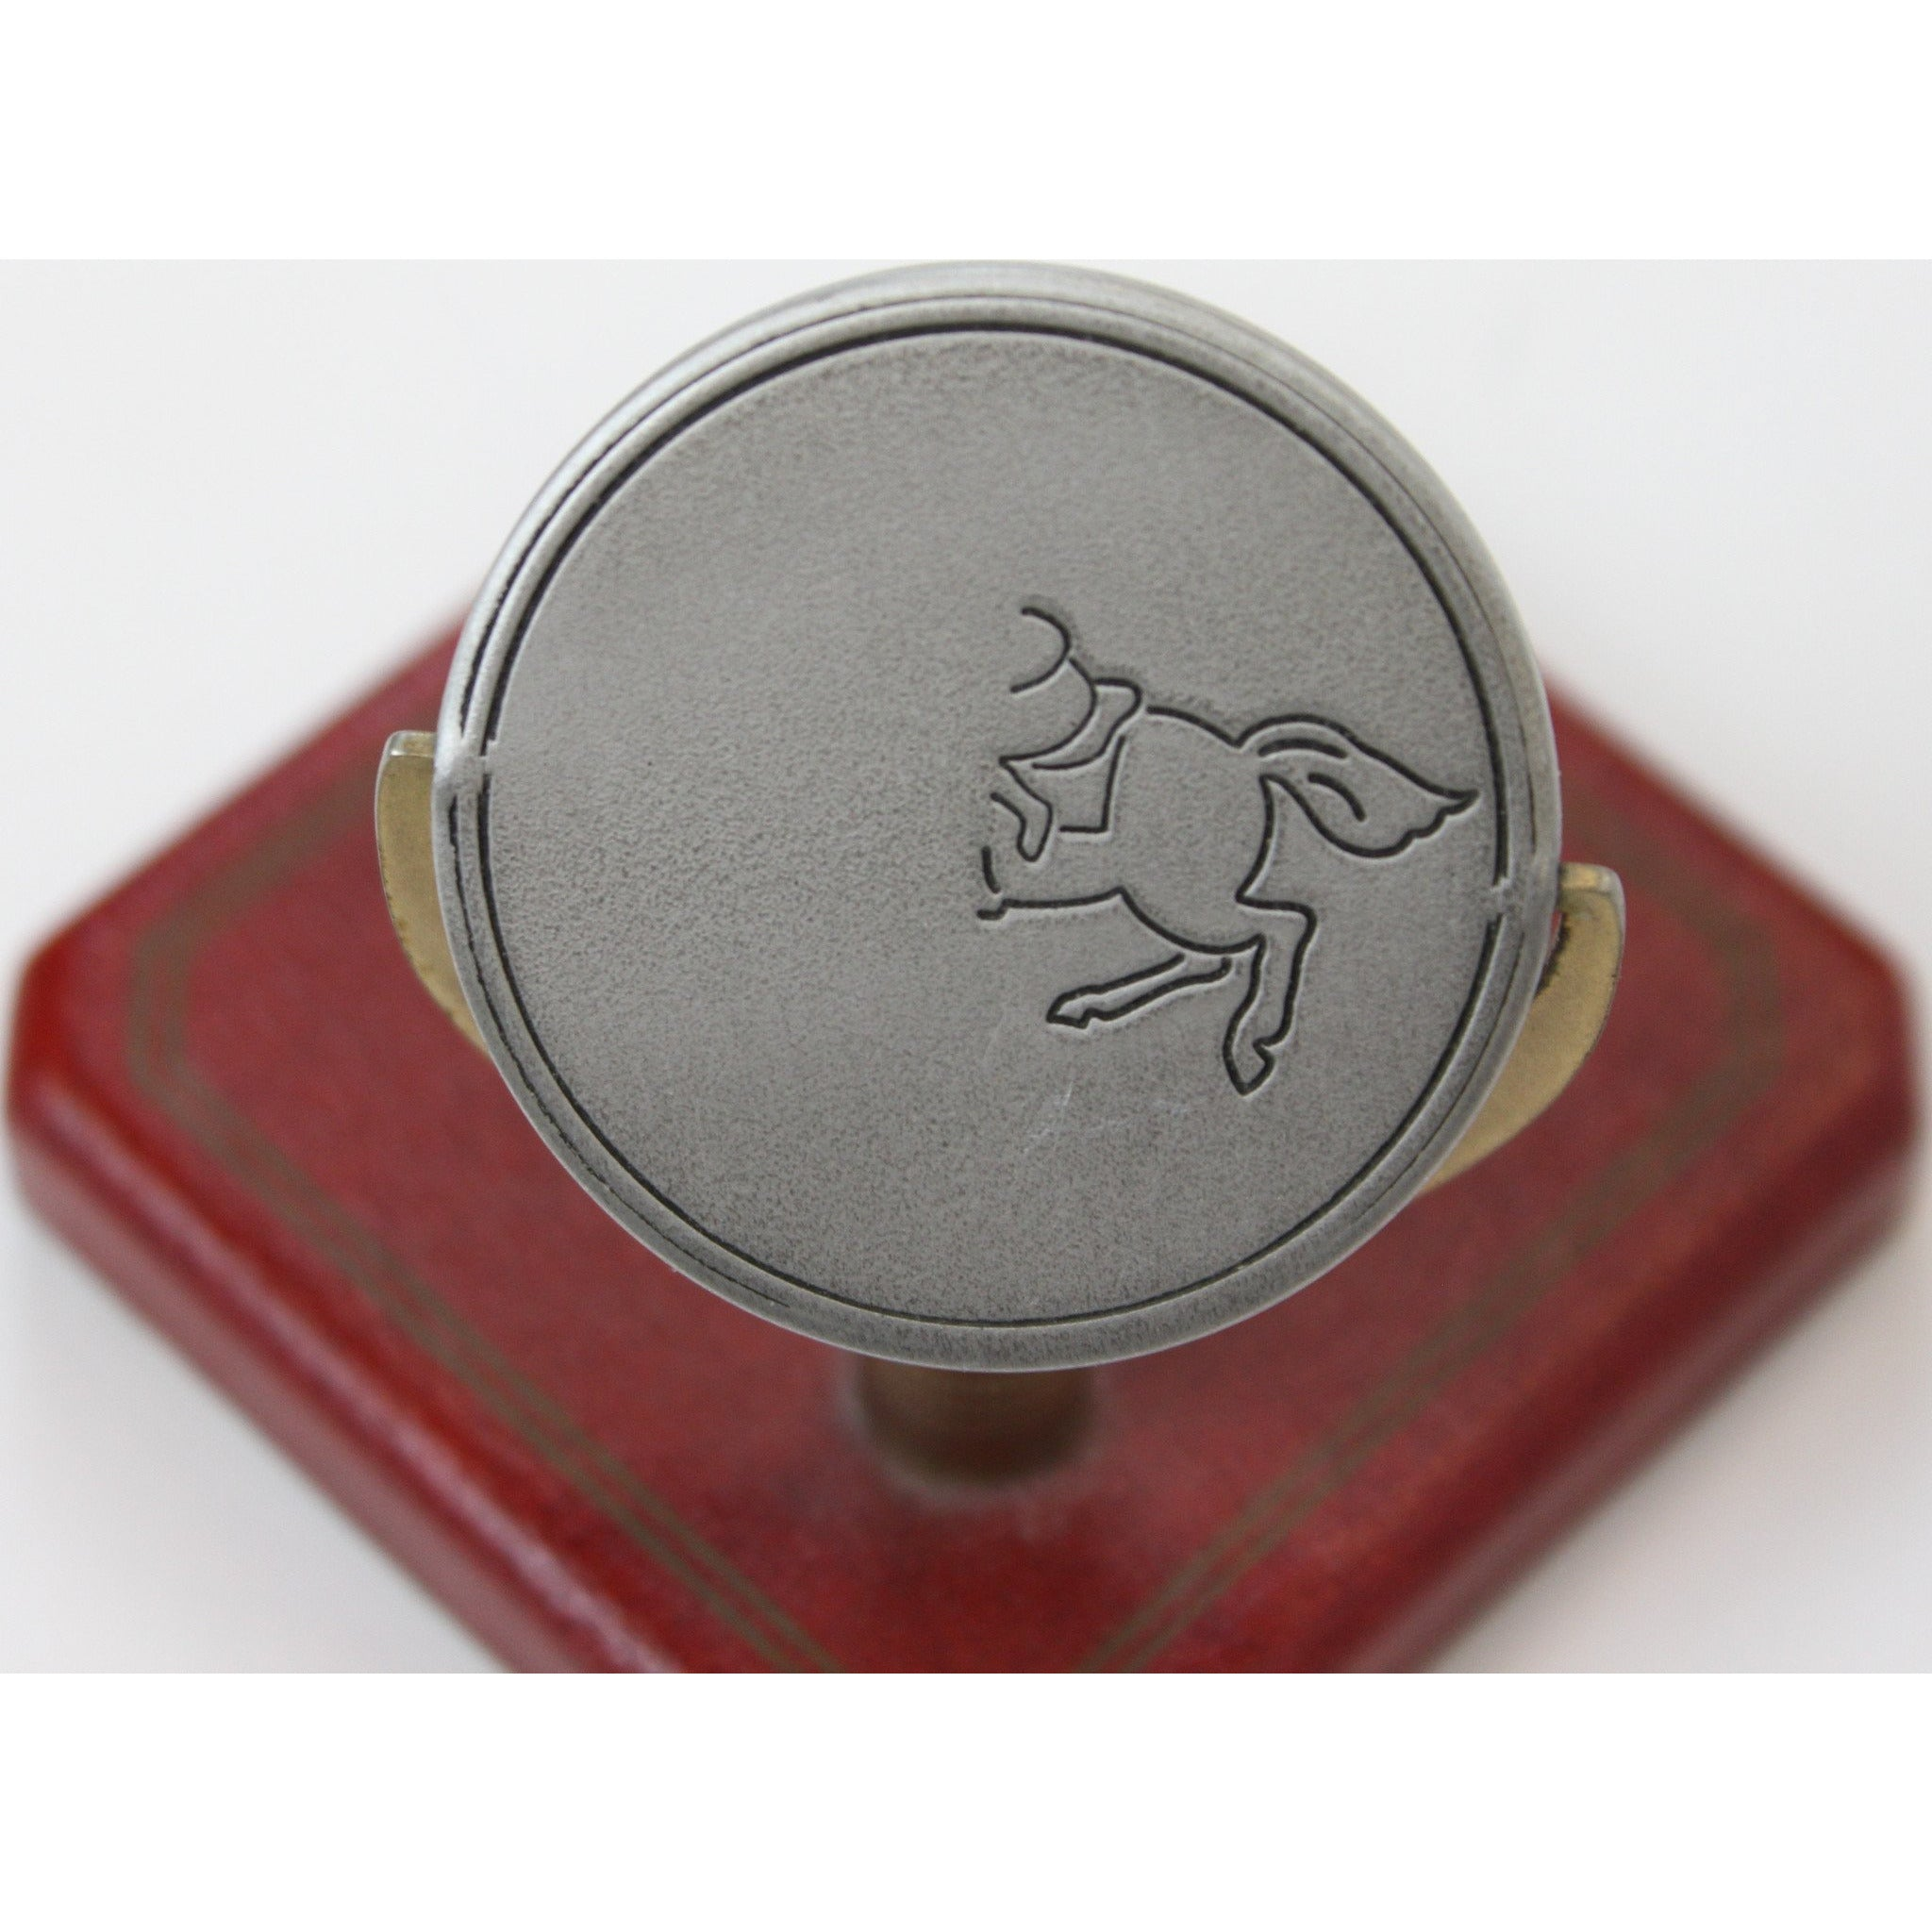 Decisions x3 Horse Head/ Tail Coin c 1940's Spinner'